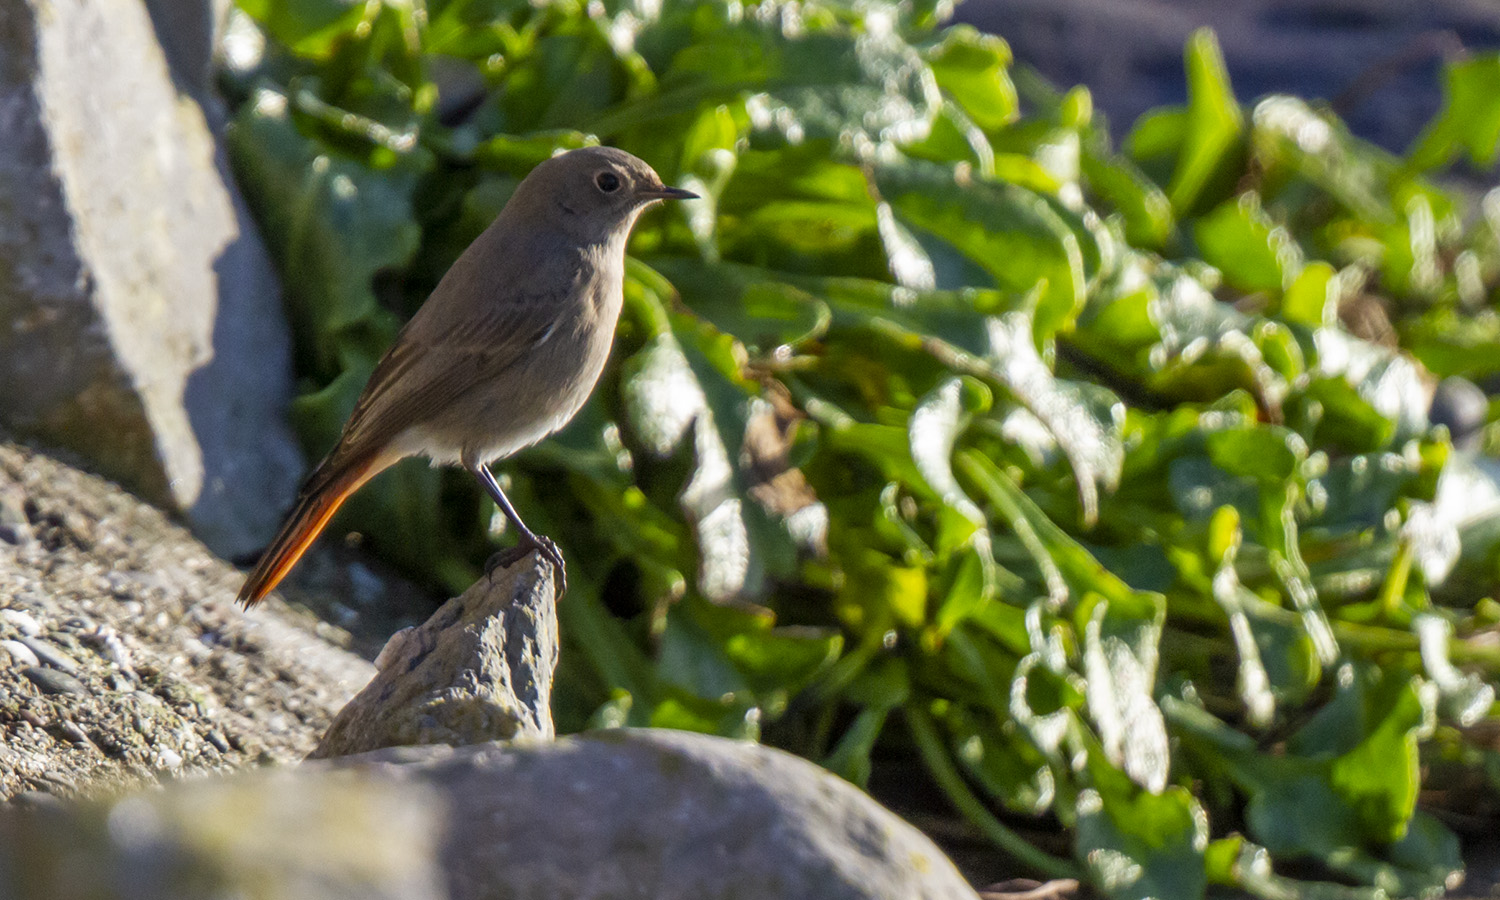 Black Redstart, Strandhall, Dec 2020 (Neil G. Morris)